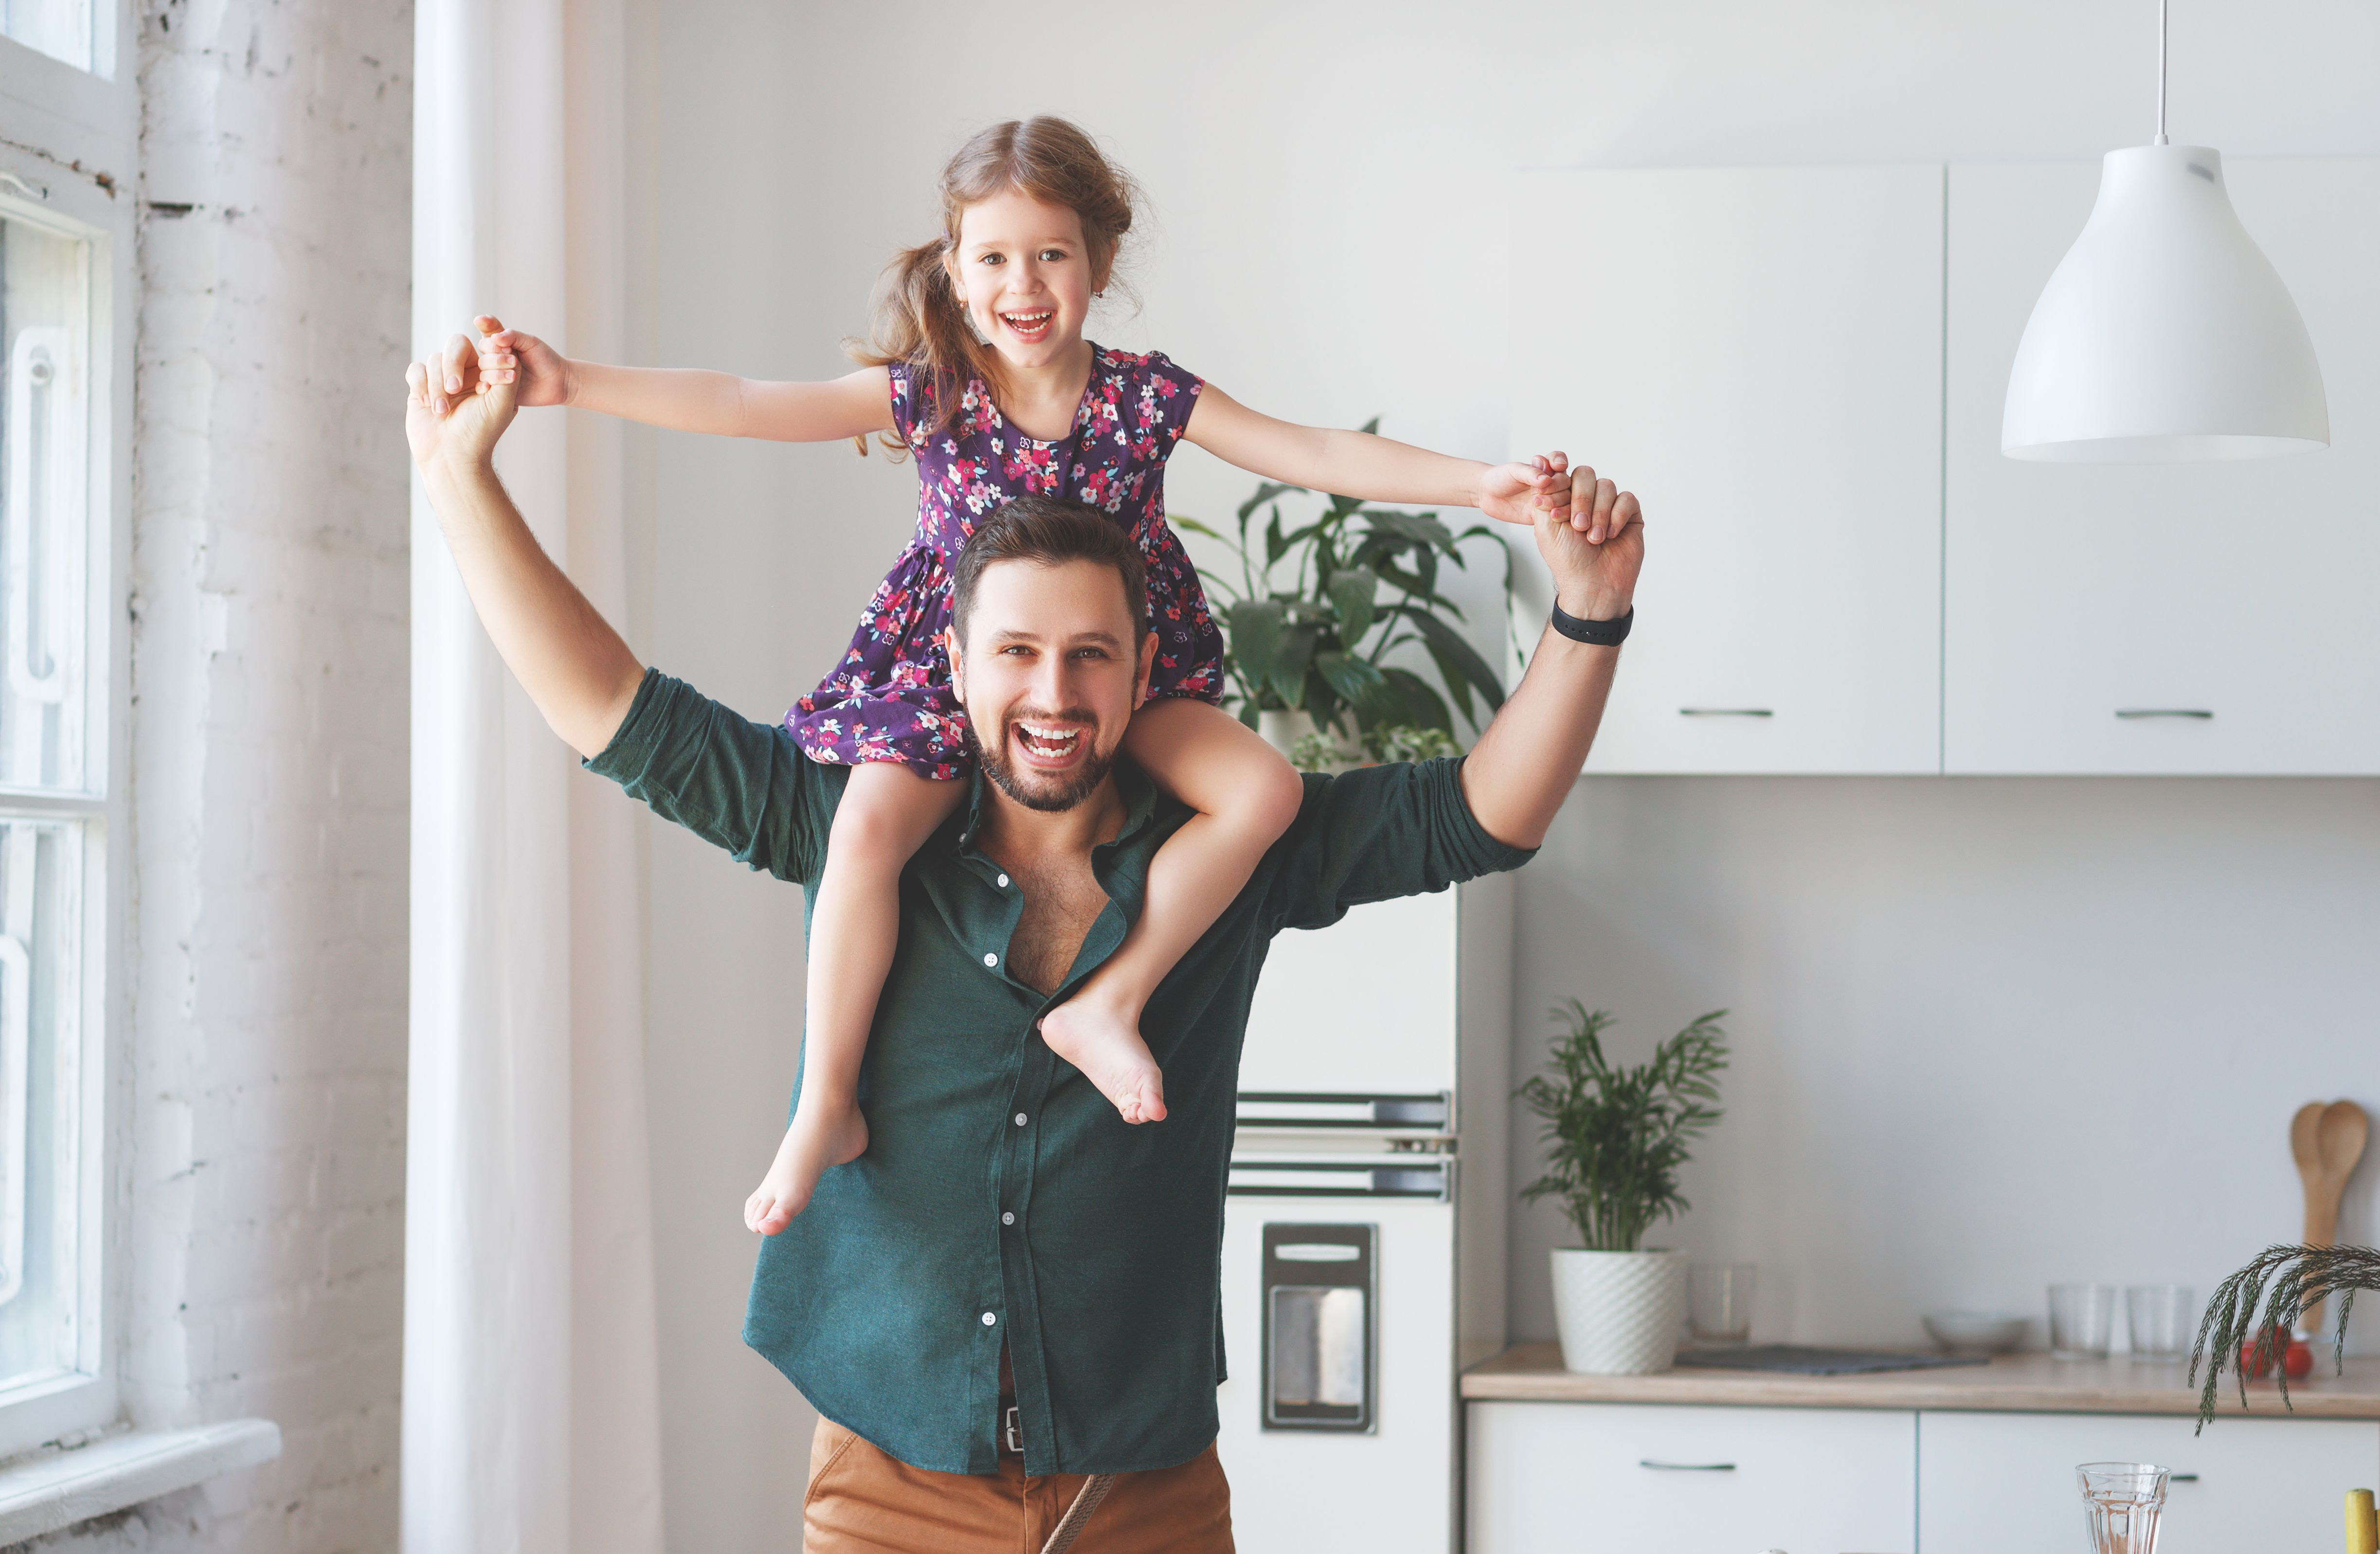 A father and daughter happily playing.   Source: Shutterstock